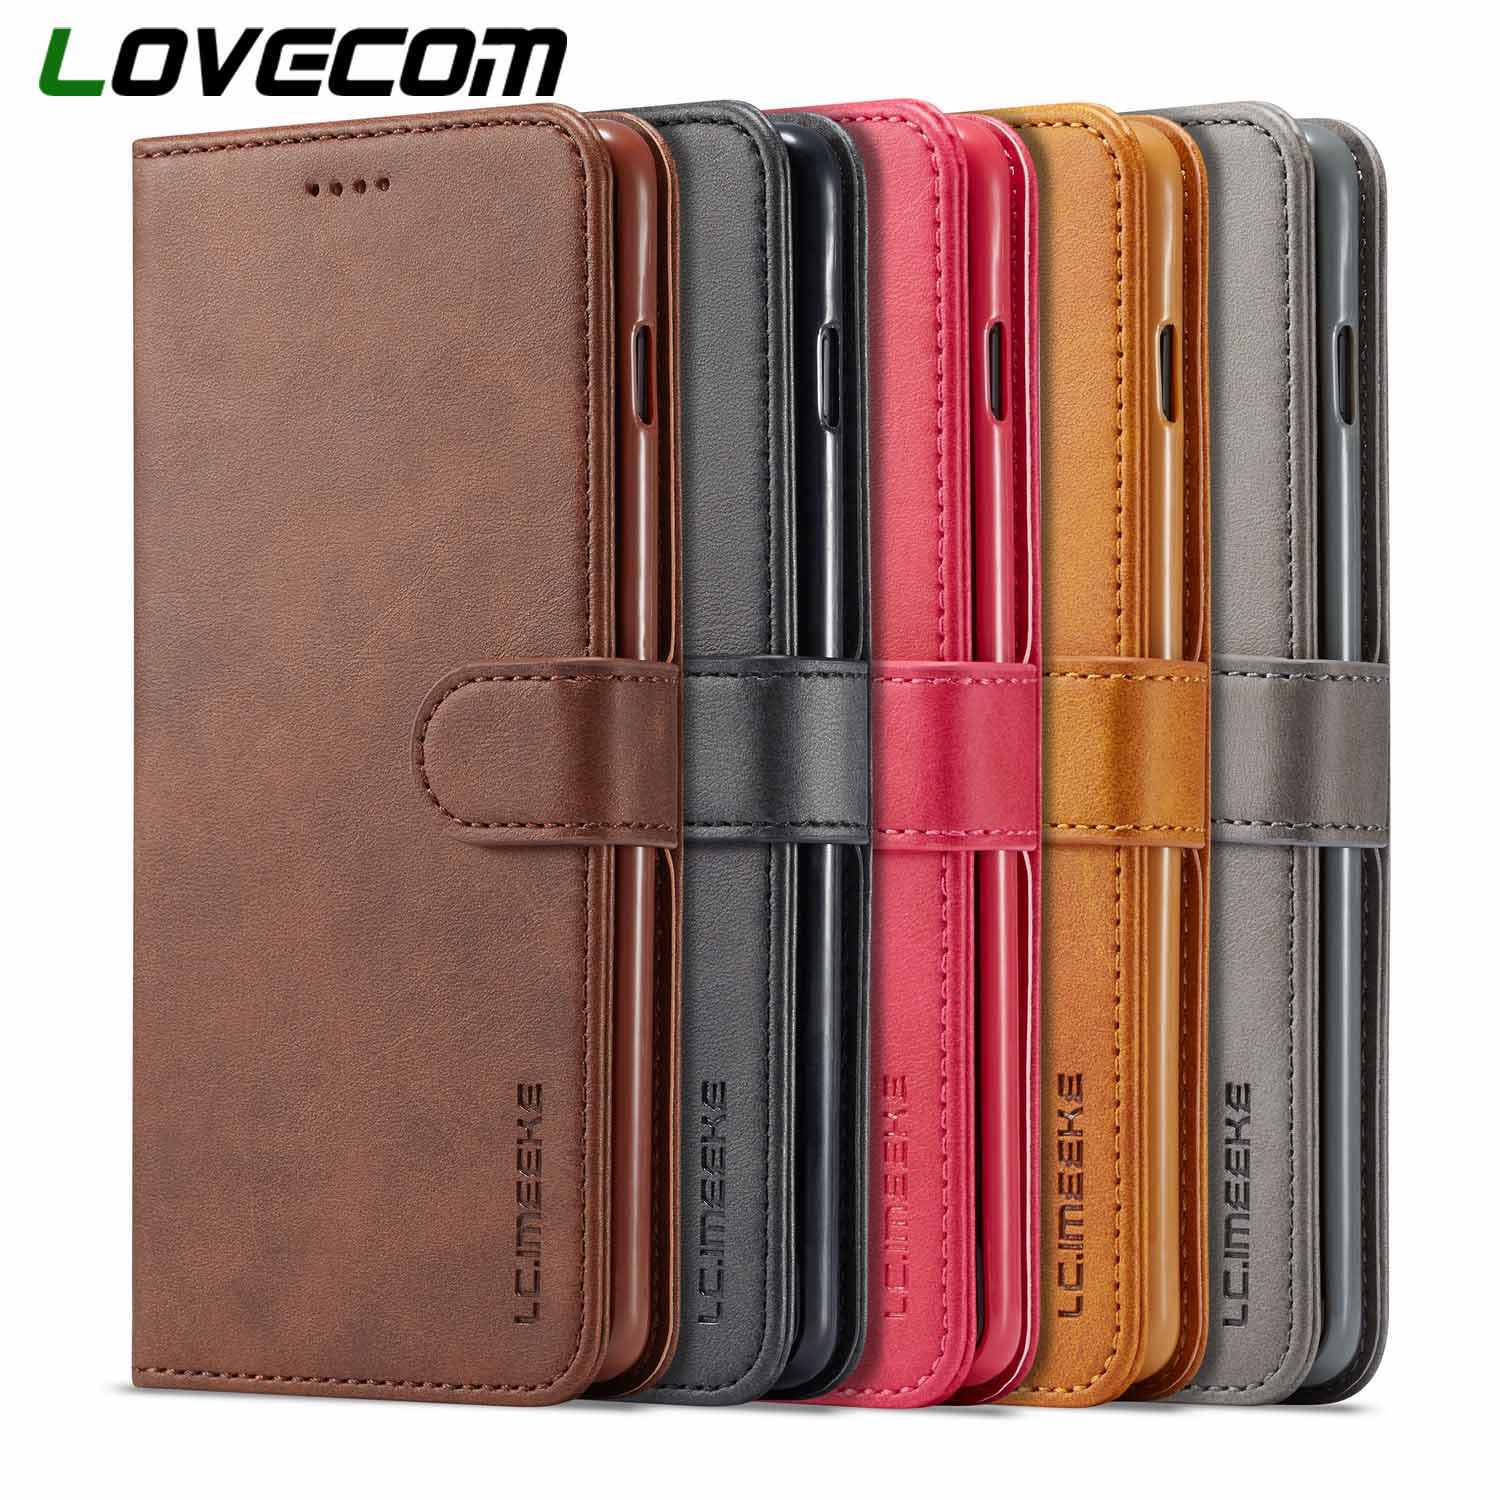 LOVECOM Vintage Leather Wallet Flip Phone Cases For Samsung Galaxy A10 A20 A40 A50 A60 M30 S10 Plus S10e S9 Note 8 9 Back Cover